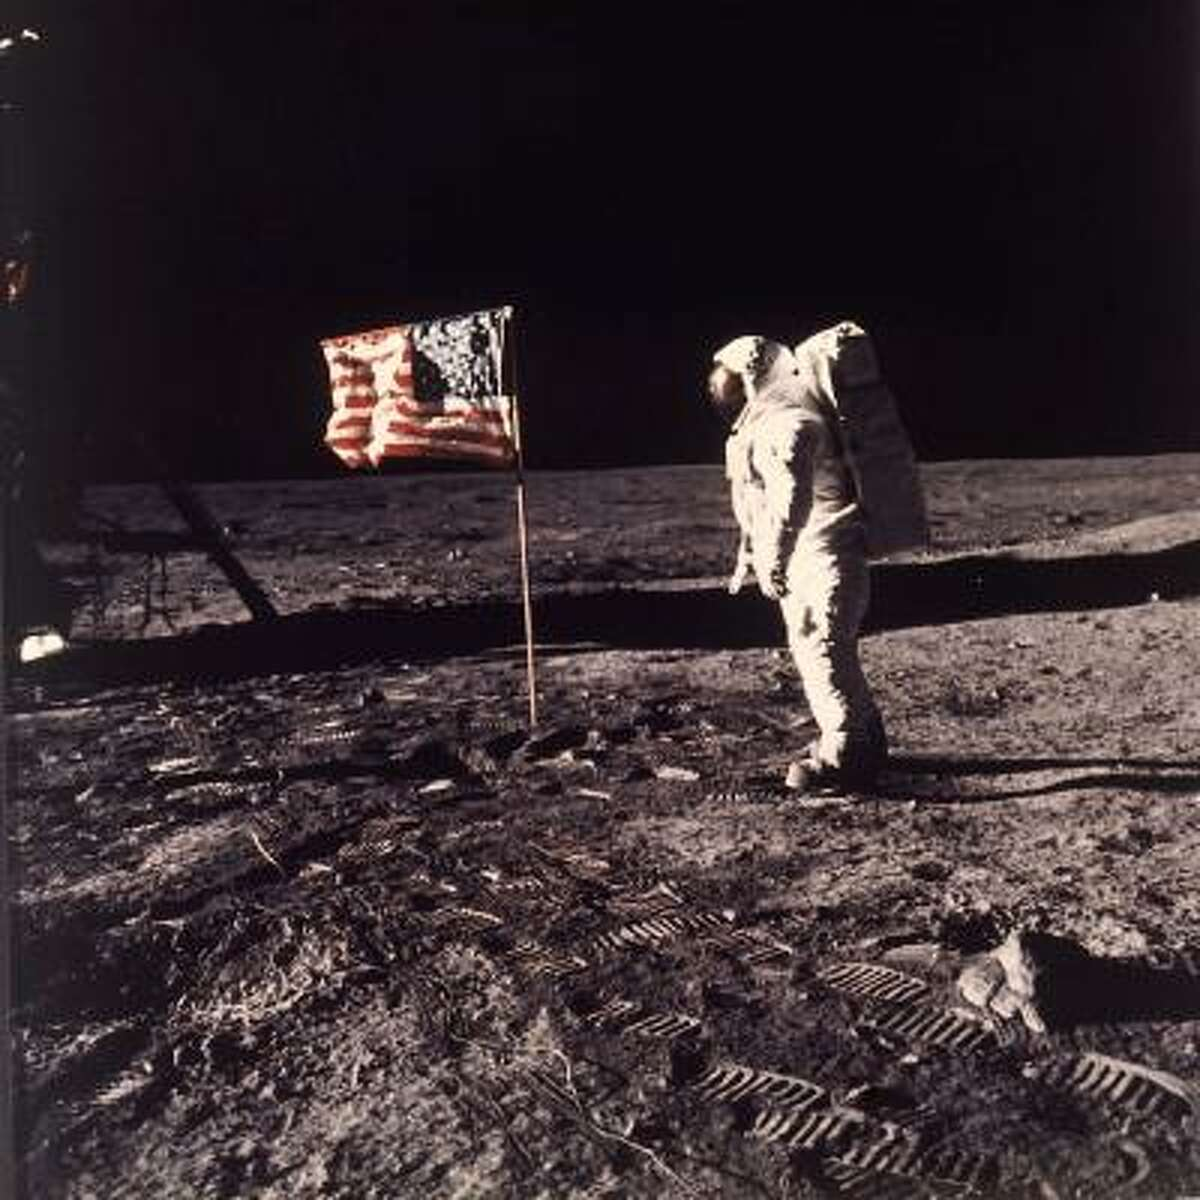 Apollo 11 Astronaut Edwin E. Aldrin poses for a photograph beside the U.S. flag deployed on the Moon during the Apollo 11 mission on July 20, 1969.